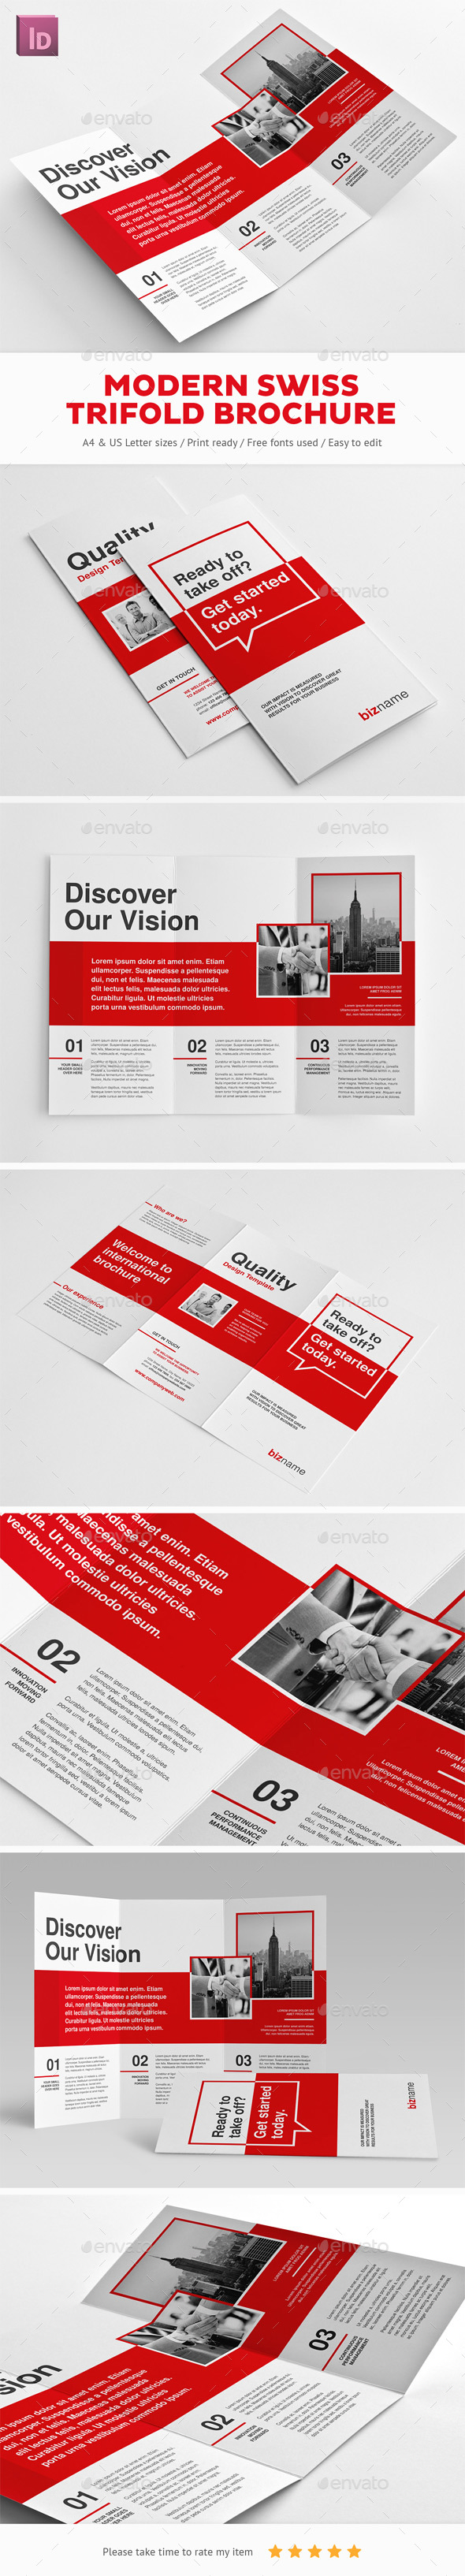 pin by tekleulaart on dizainas pinterest brochure design